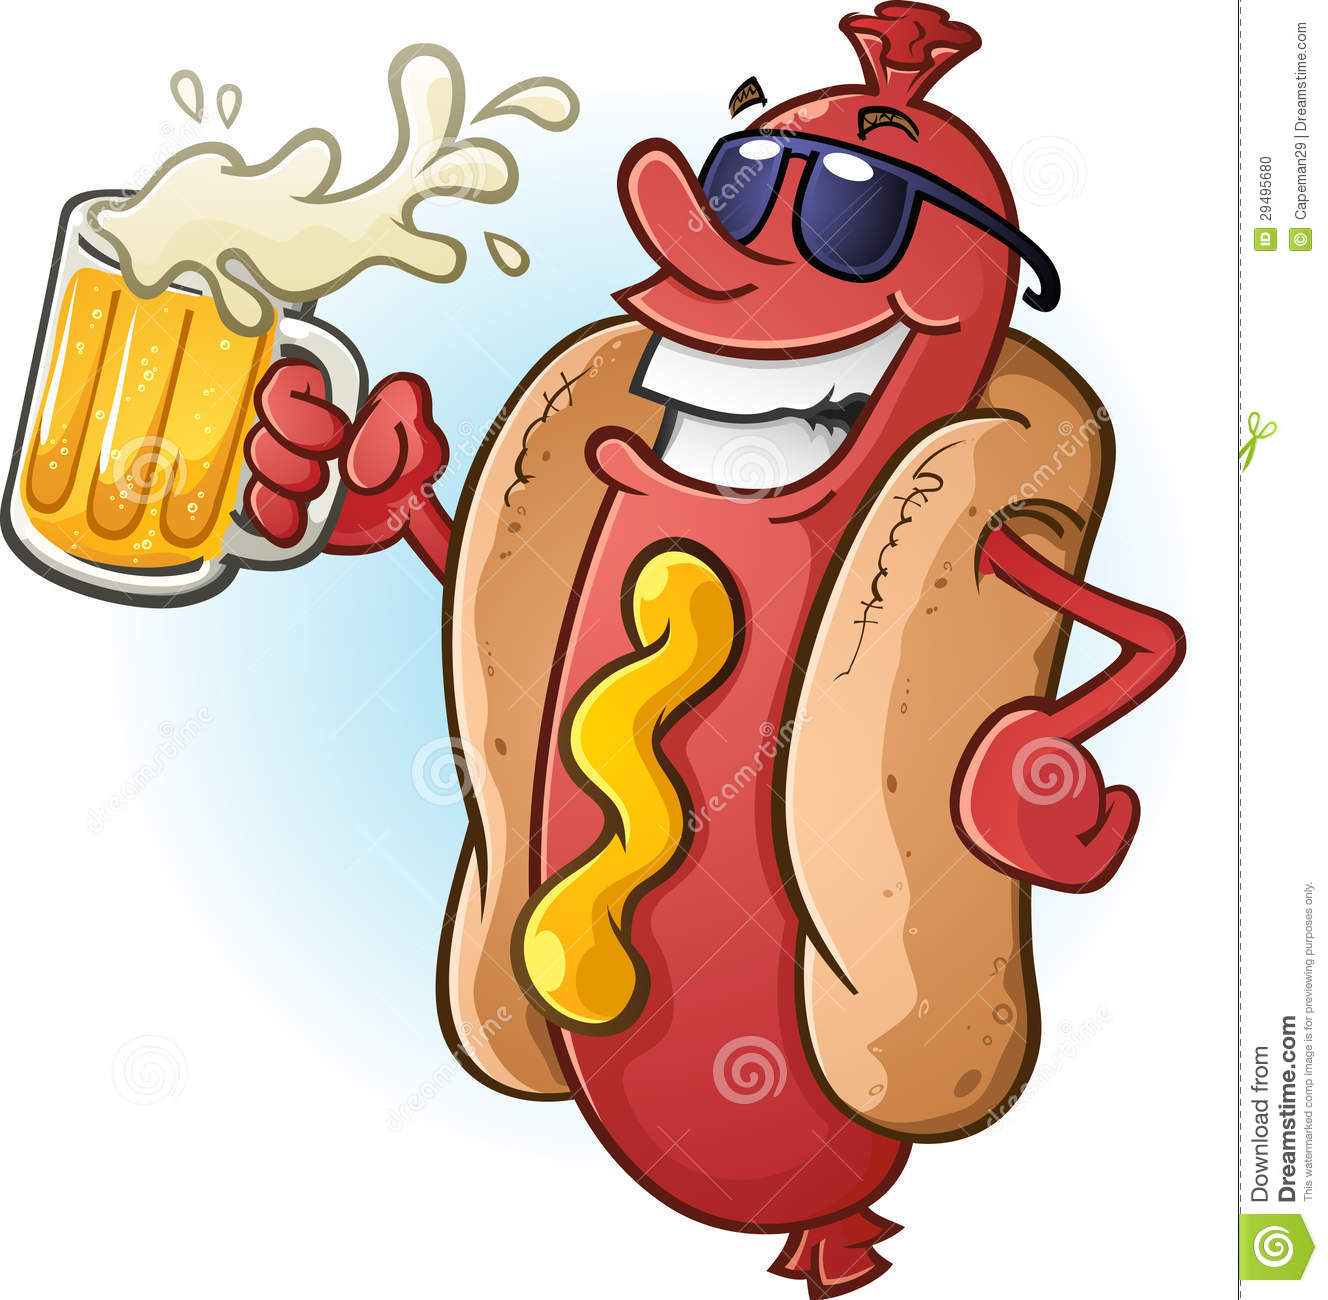 Stock Photo: Hot Dog Cartoon Wearing Sunglasses and Drinking Cold Beer